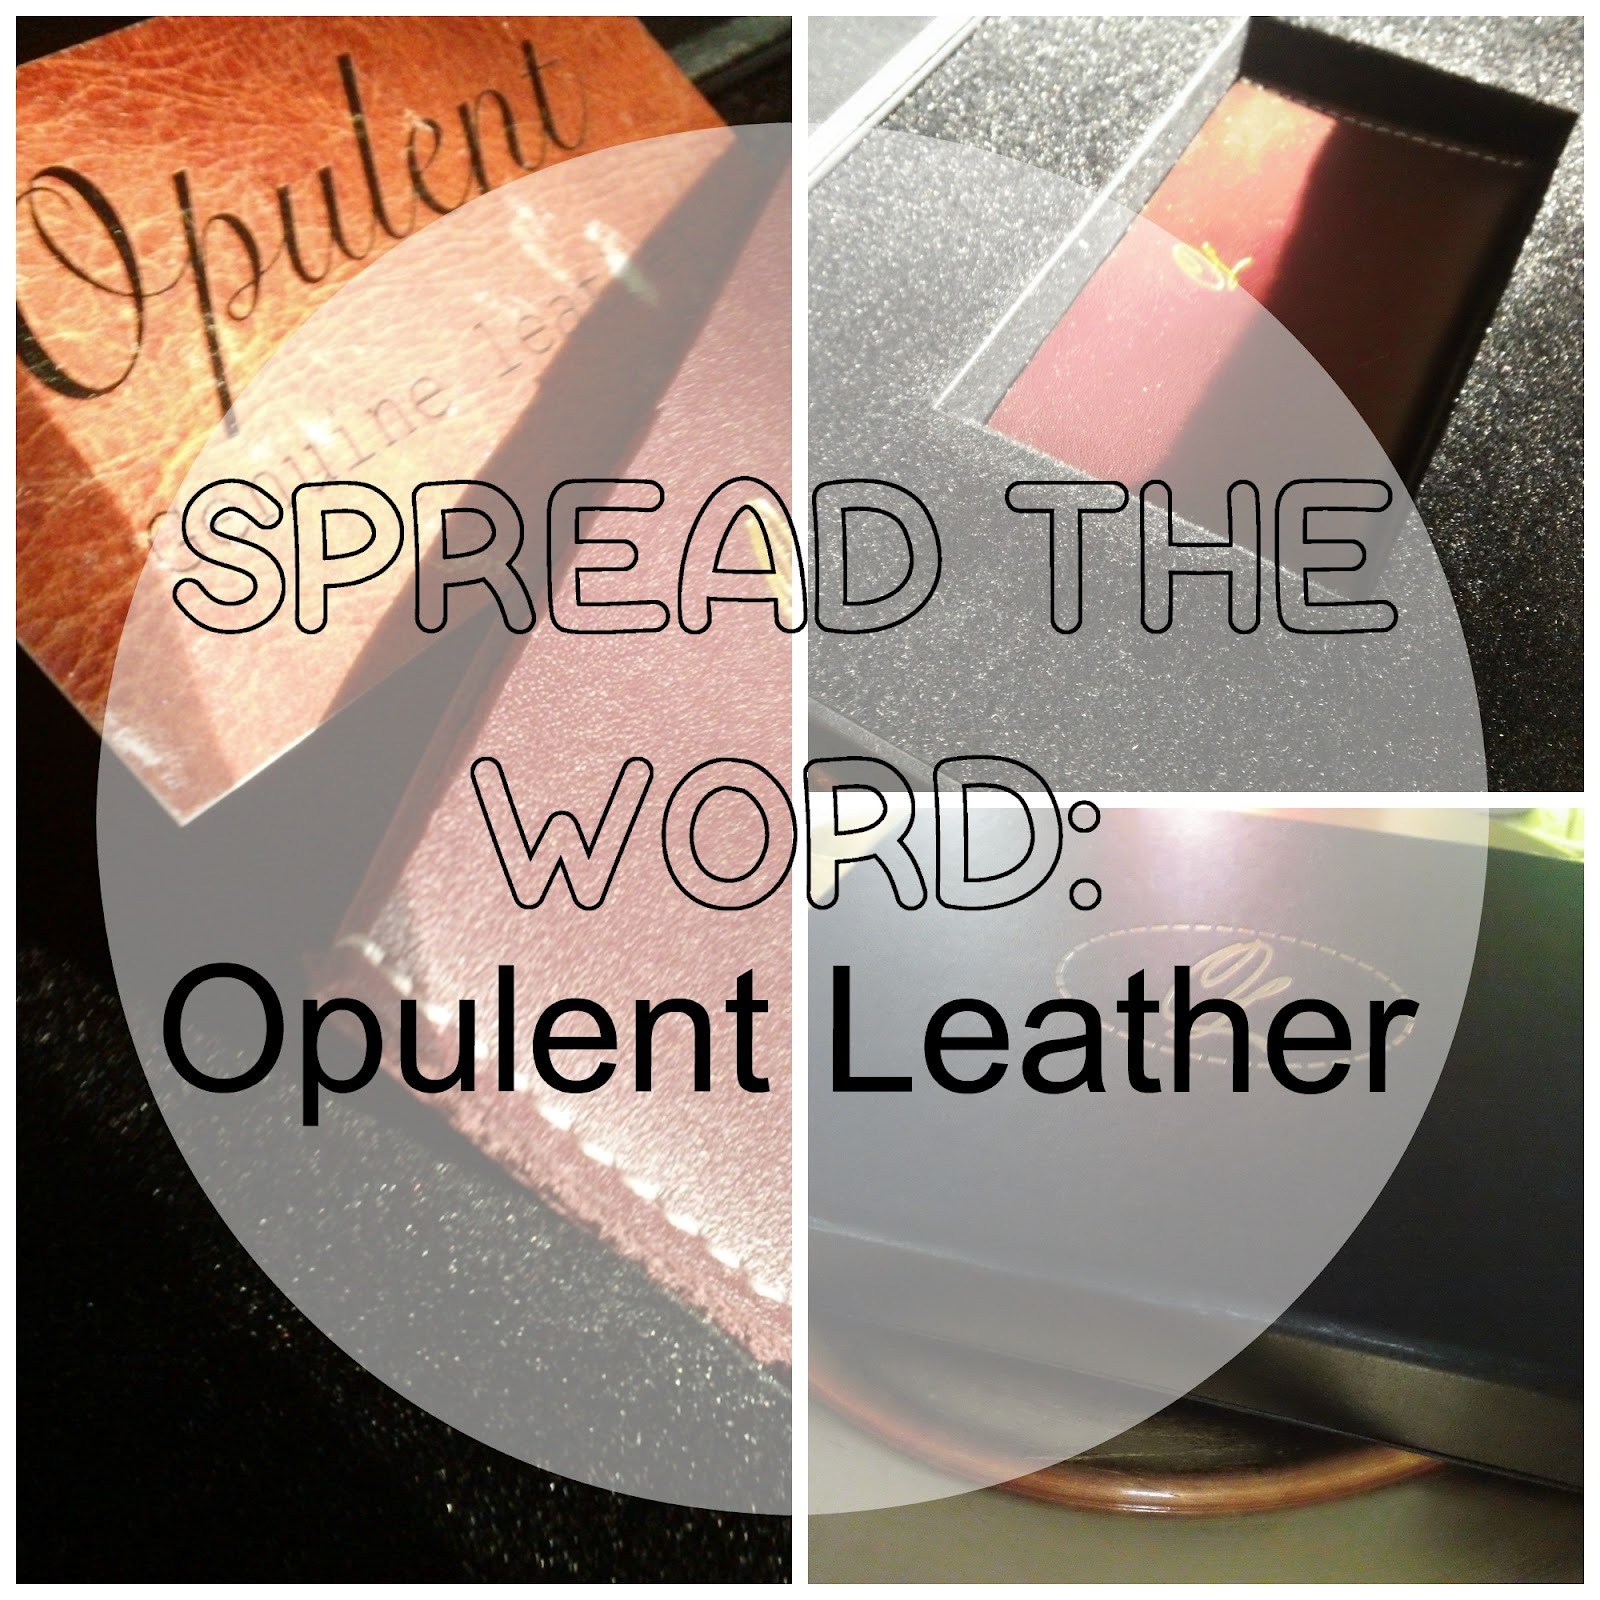 Spread the Word Opulent Leather_ Main Image.jpg